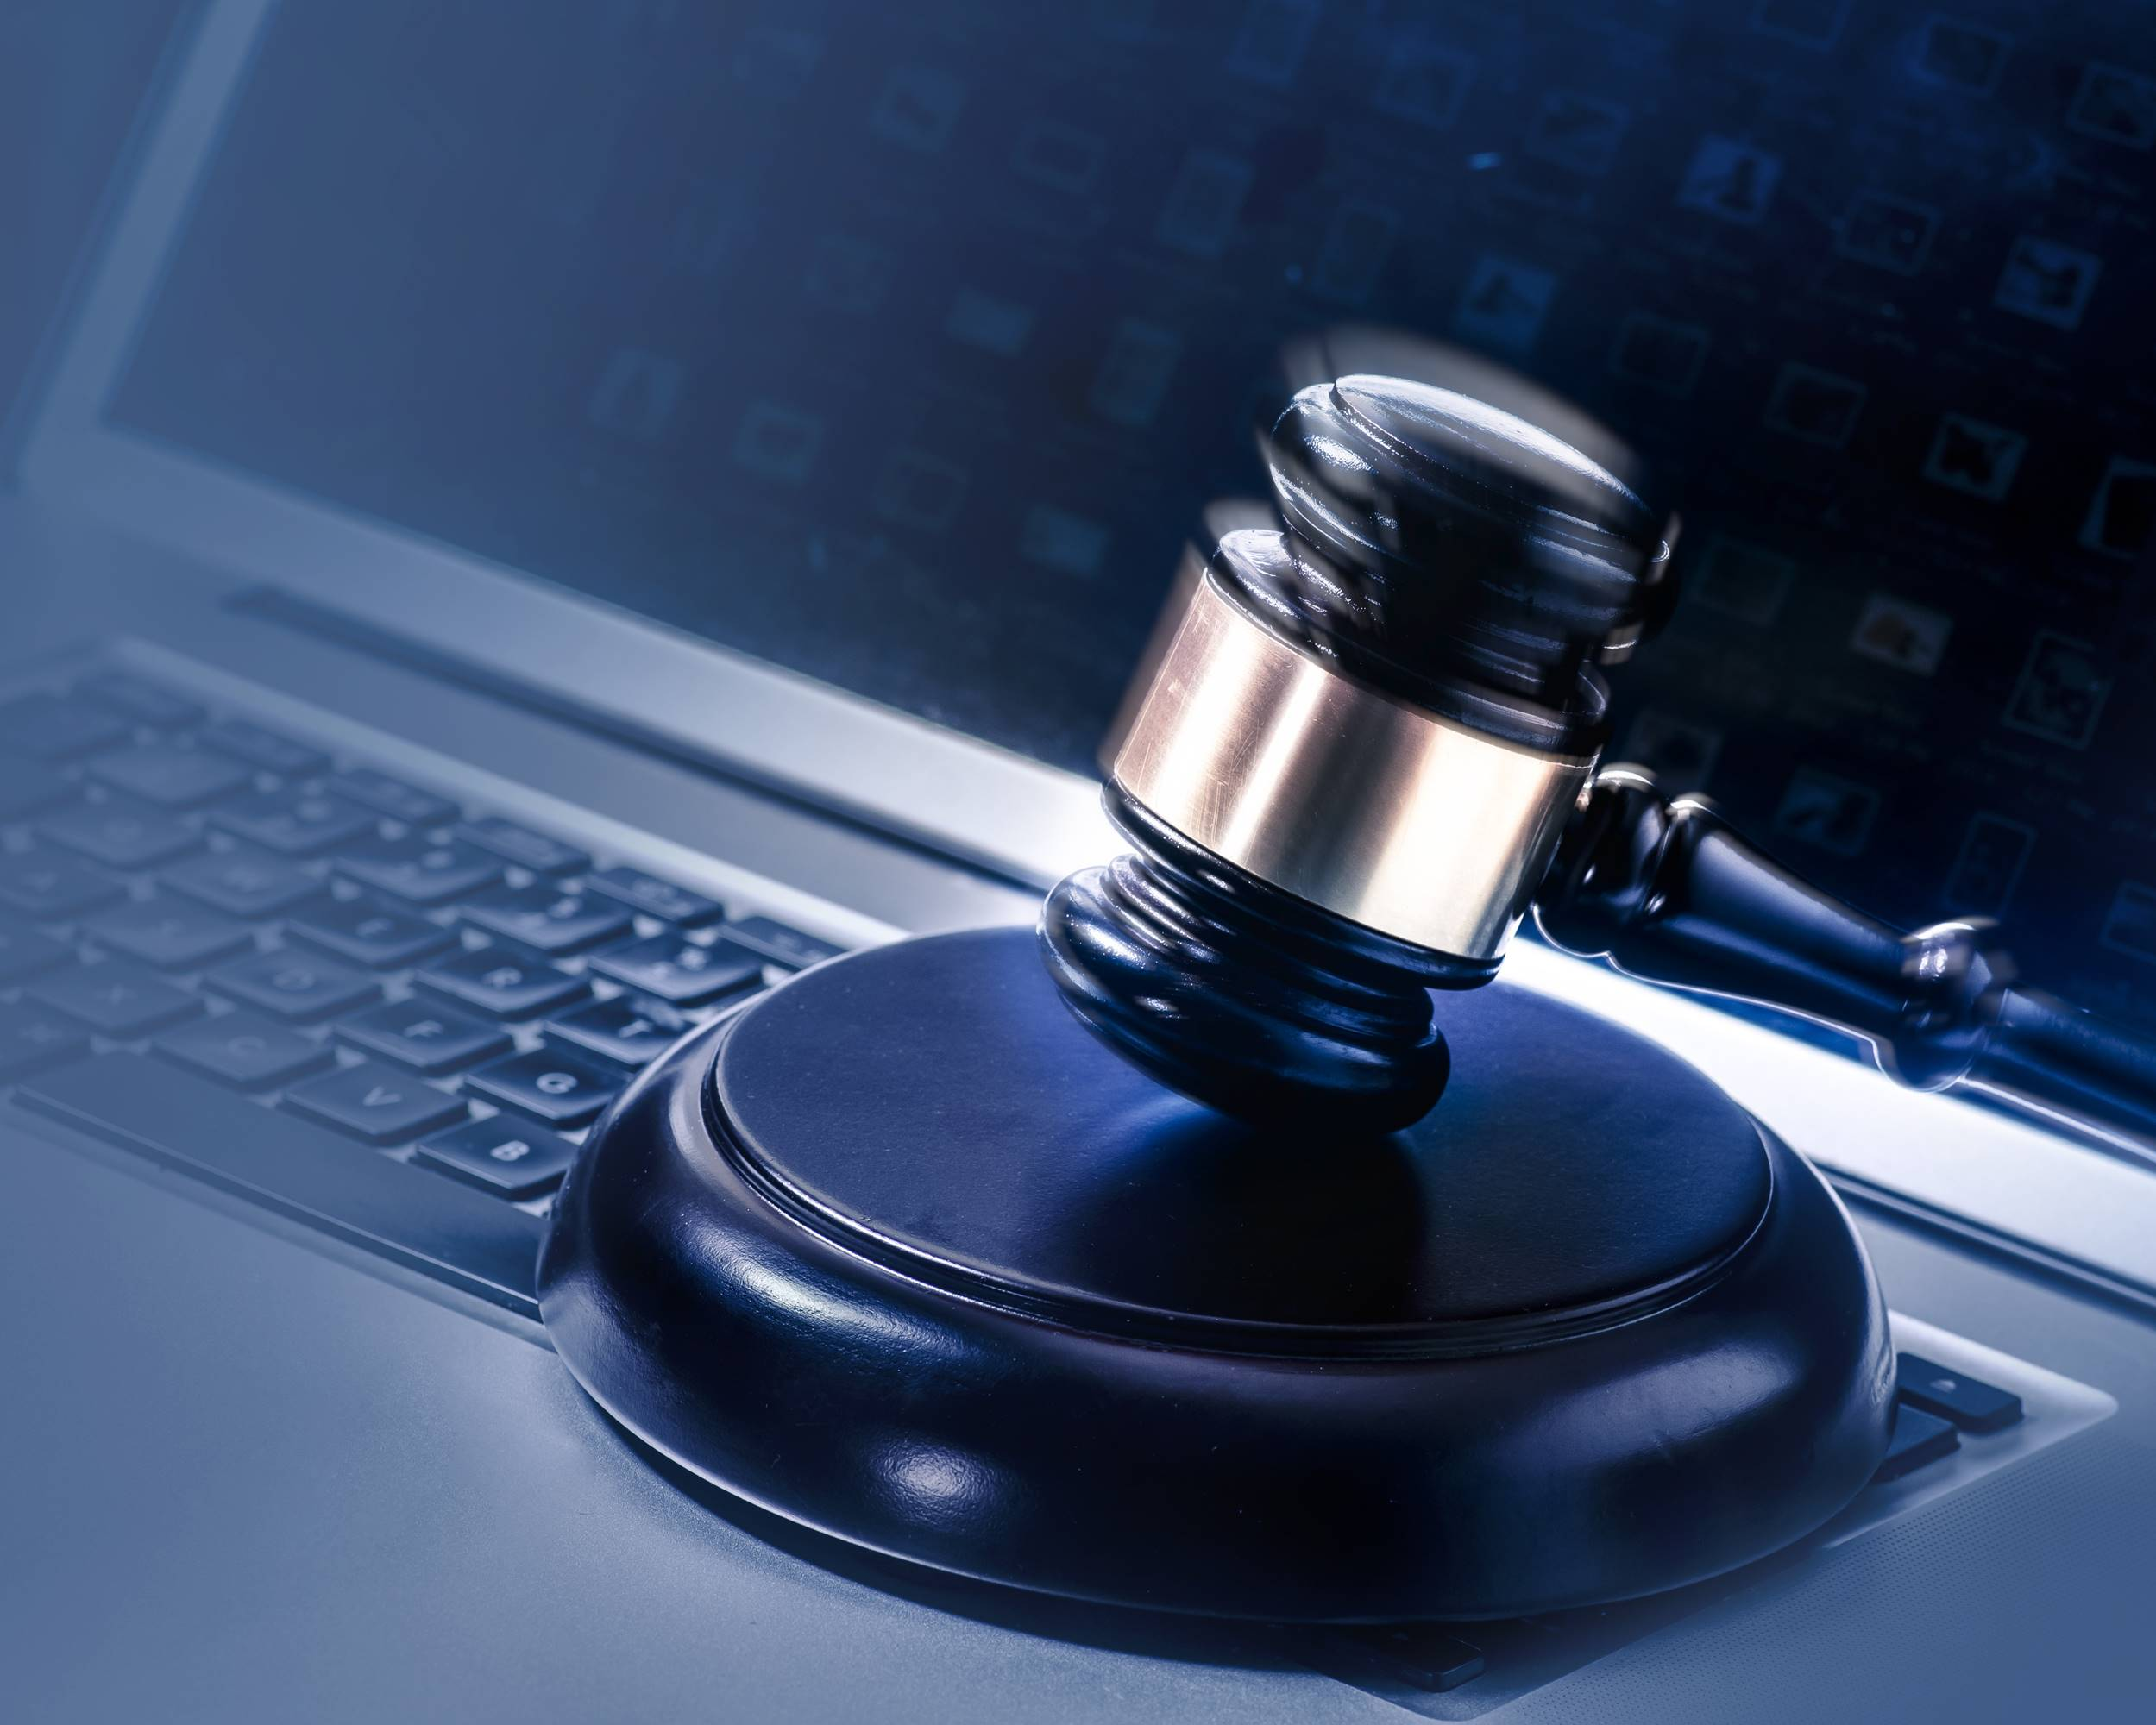 Gavel on a computer legal law